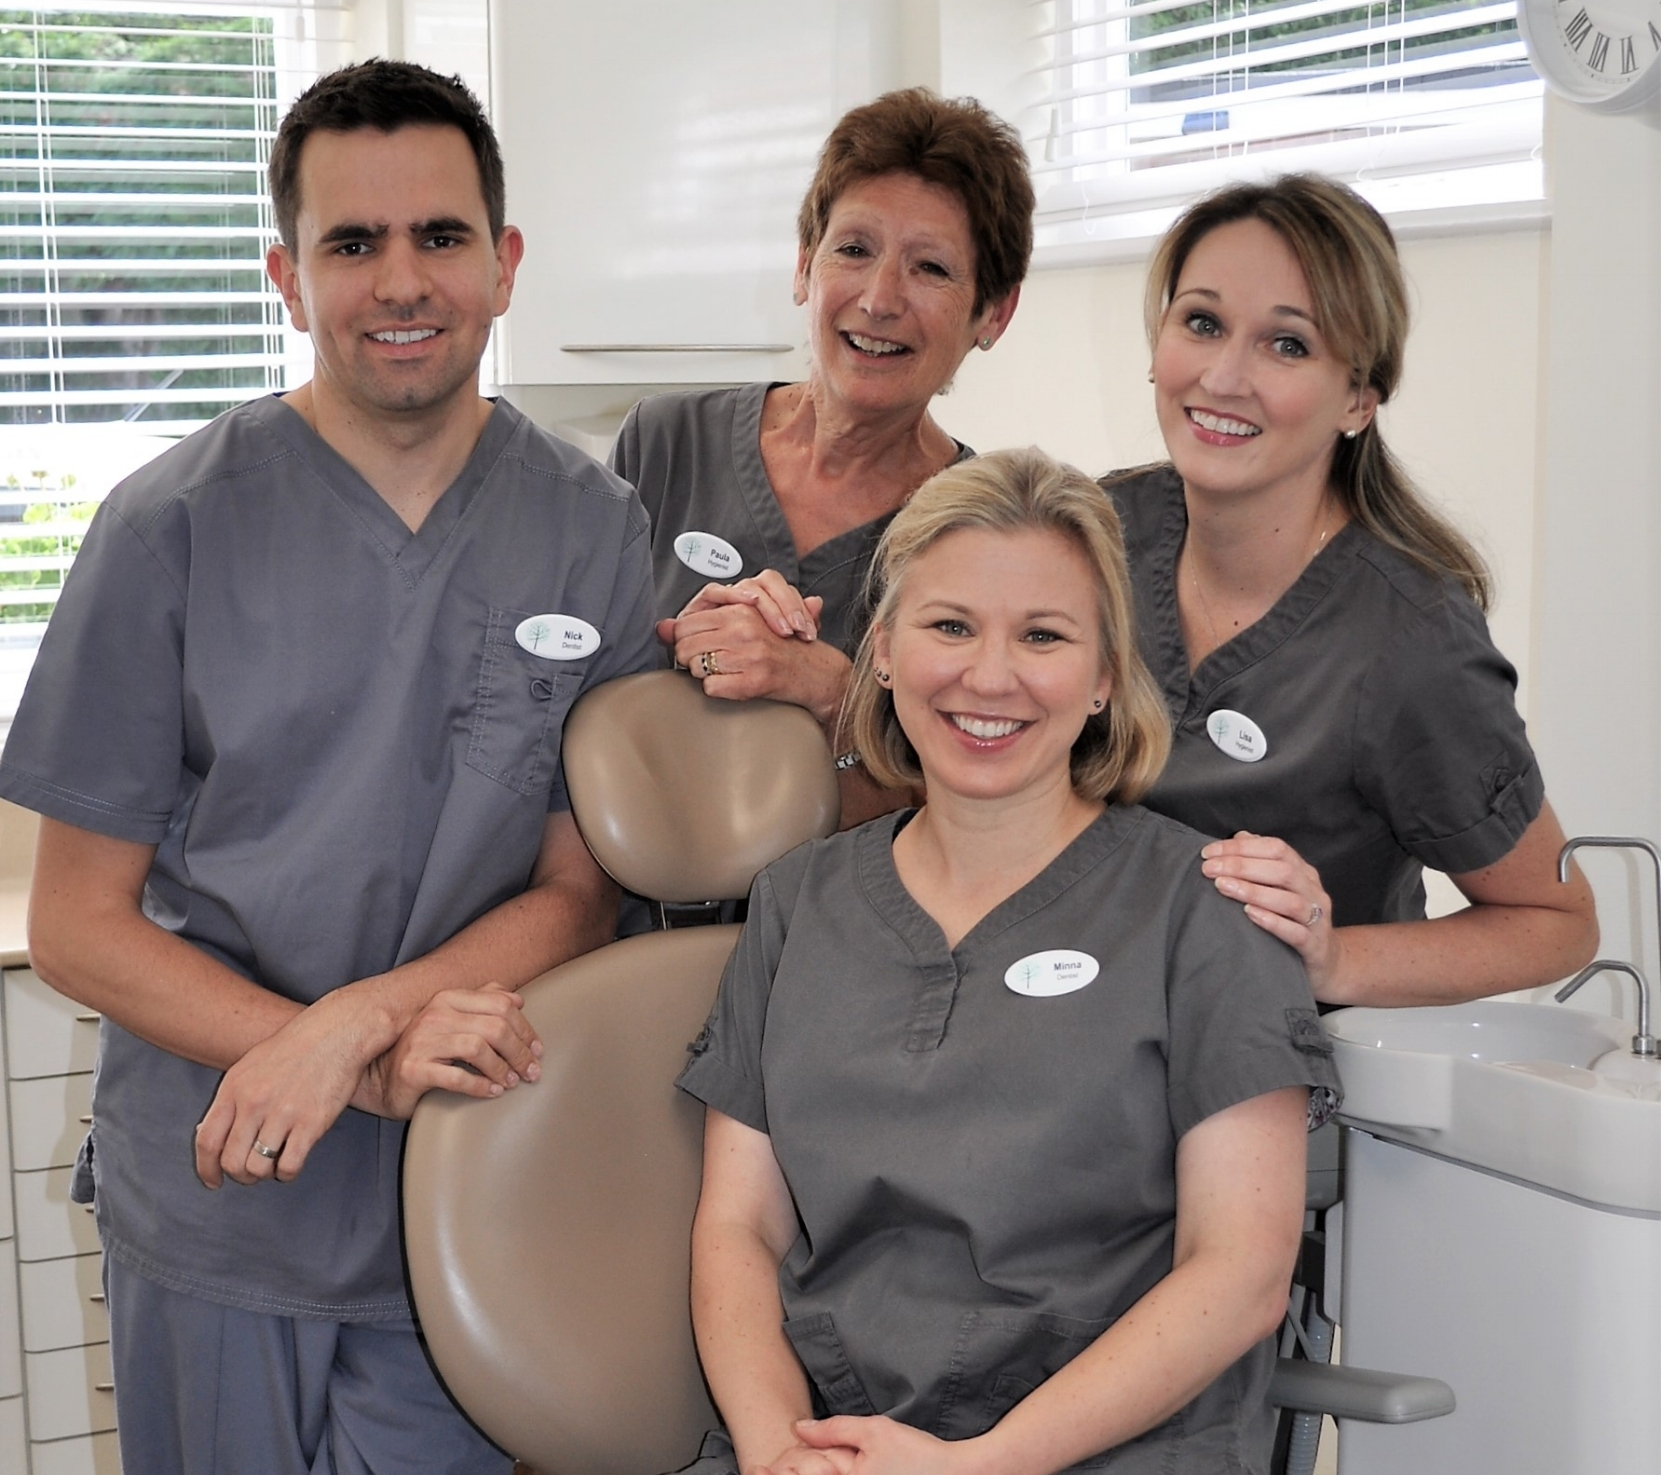 Outstanding dental care for you. - We provide the highest quality dental treatment using state of the art equipment in a calm and friendly environment.